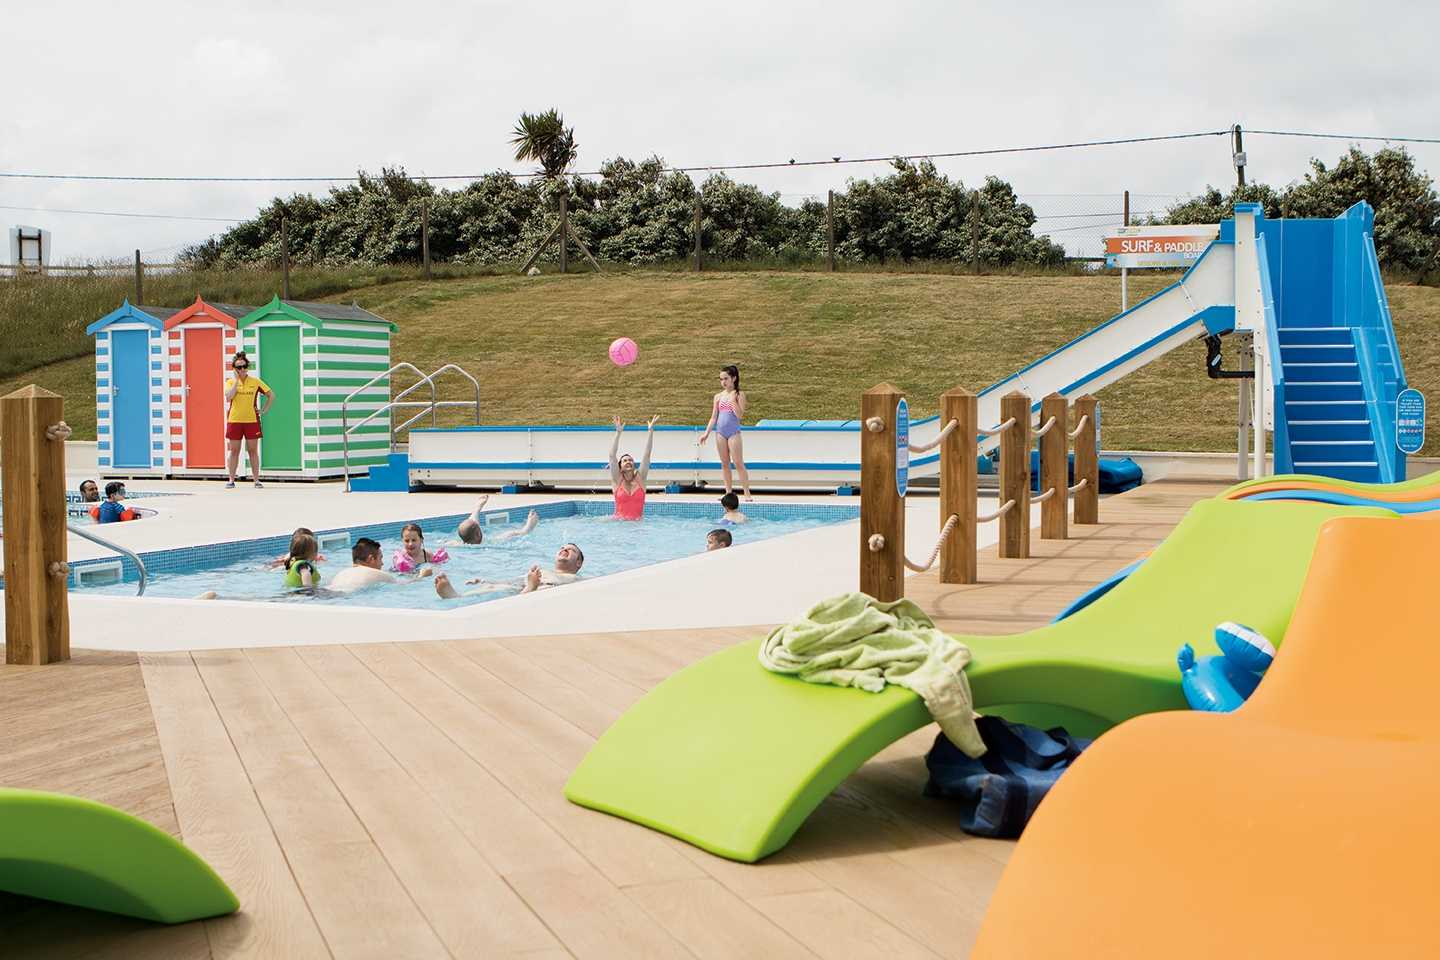 Lounge chairs by the outdoor pool